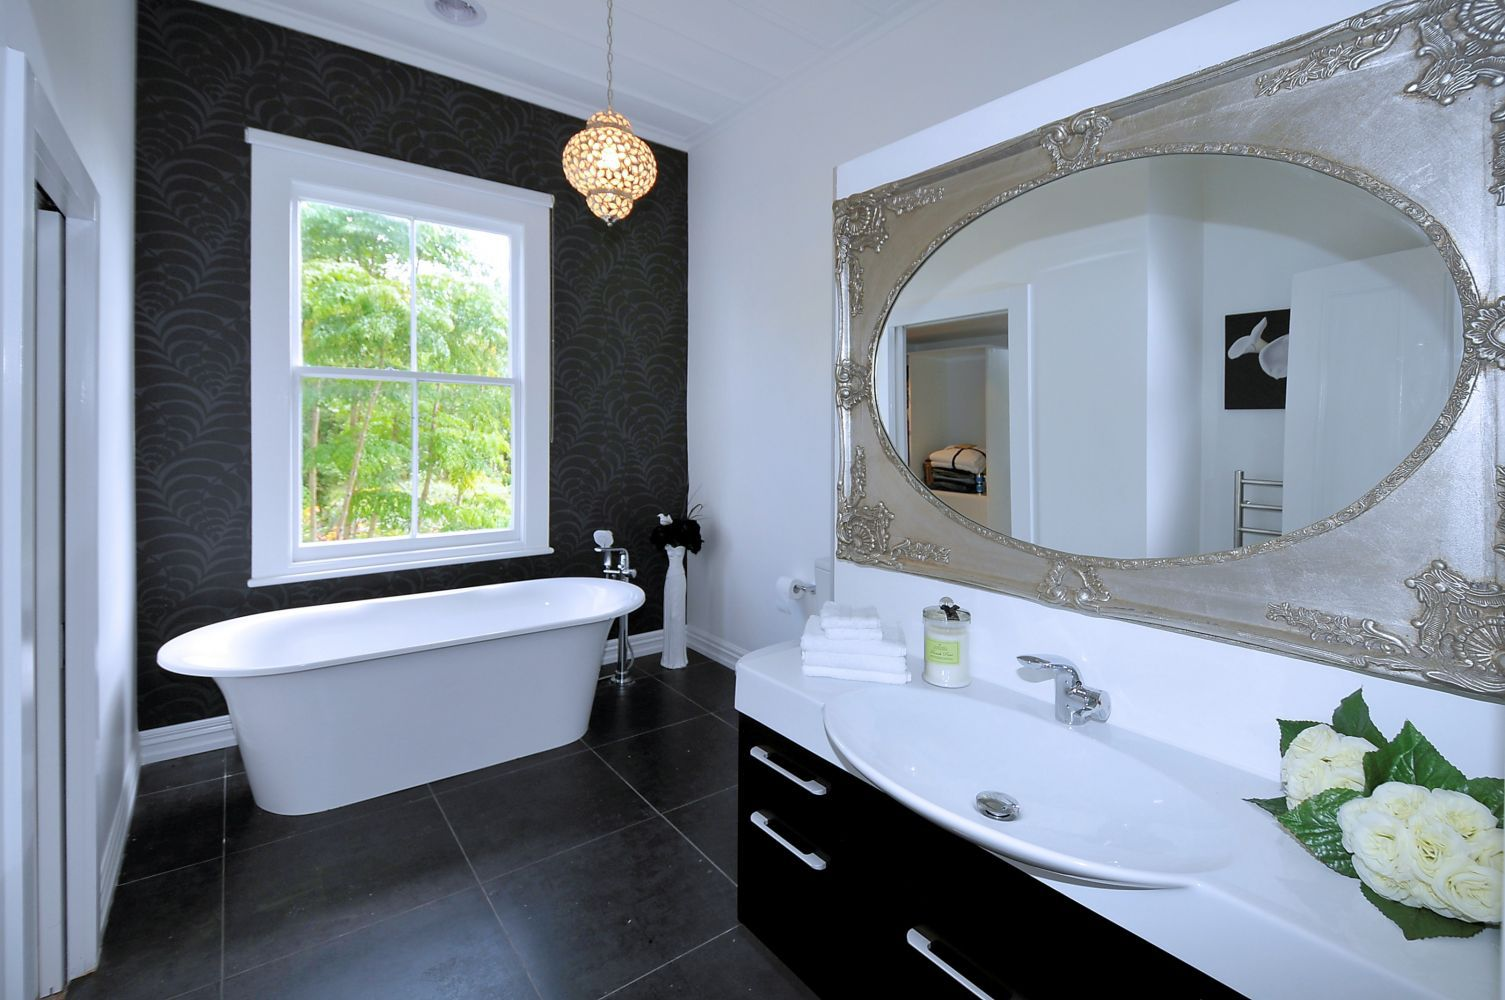 Bathroom refurbishment North Shore – Bathrooms in Auckland